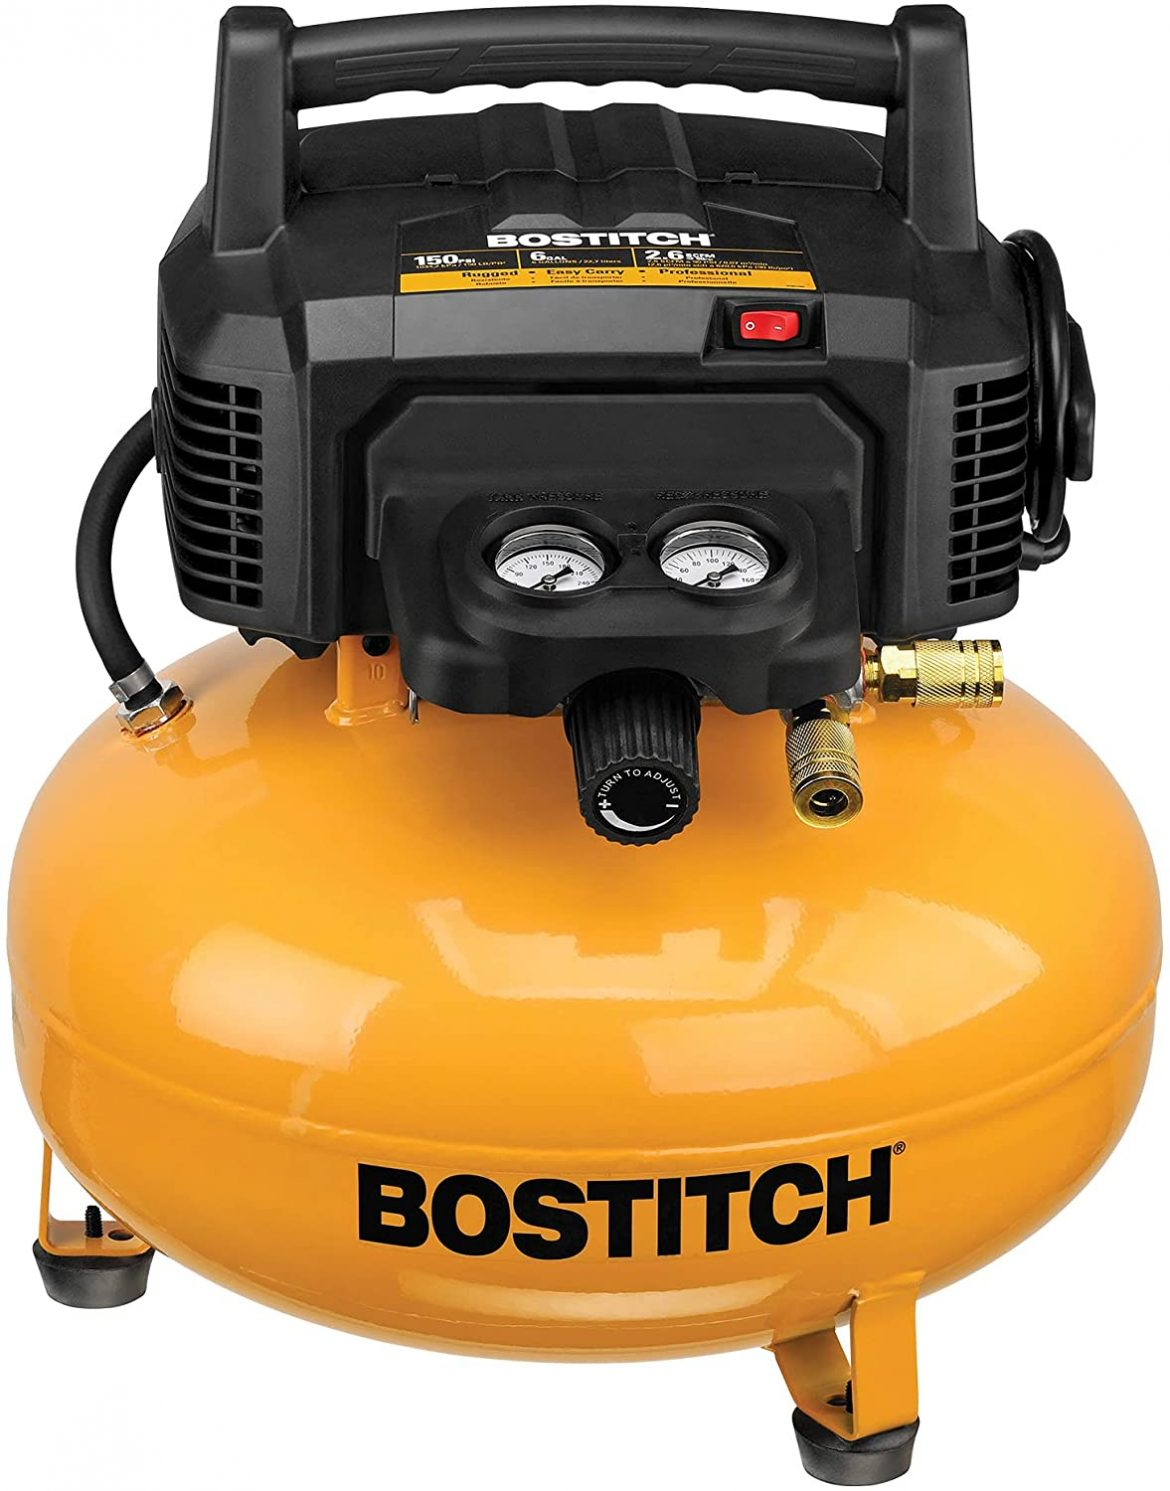 Troubleshooting of the Bostitch pancake air compressor